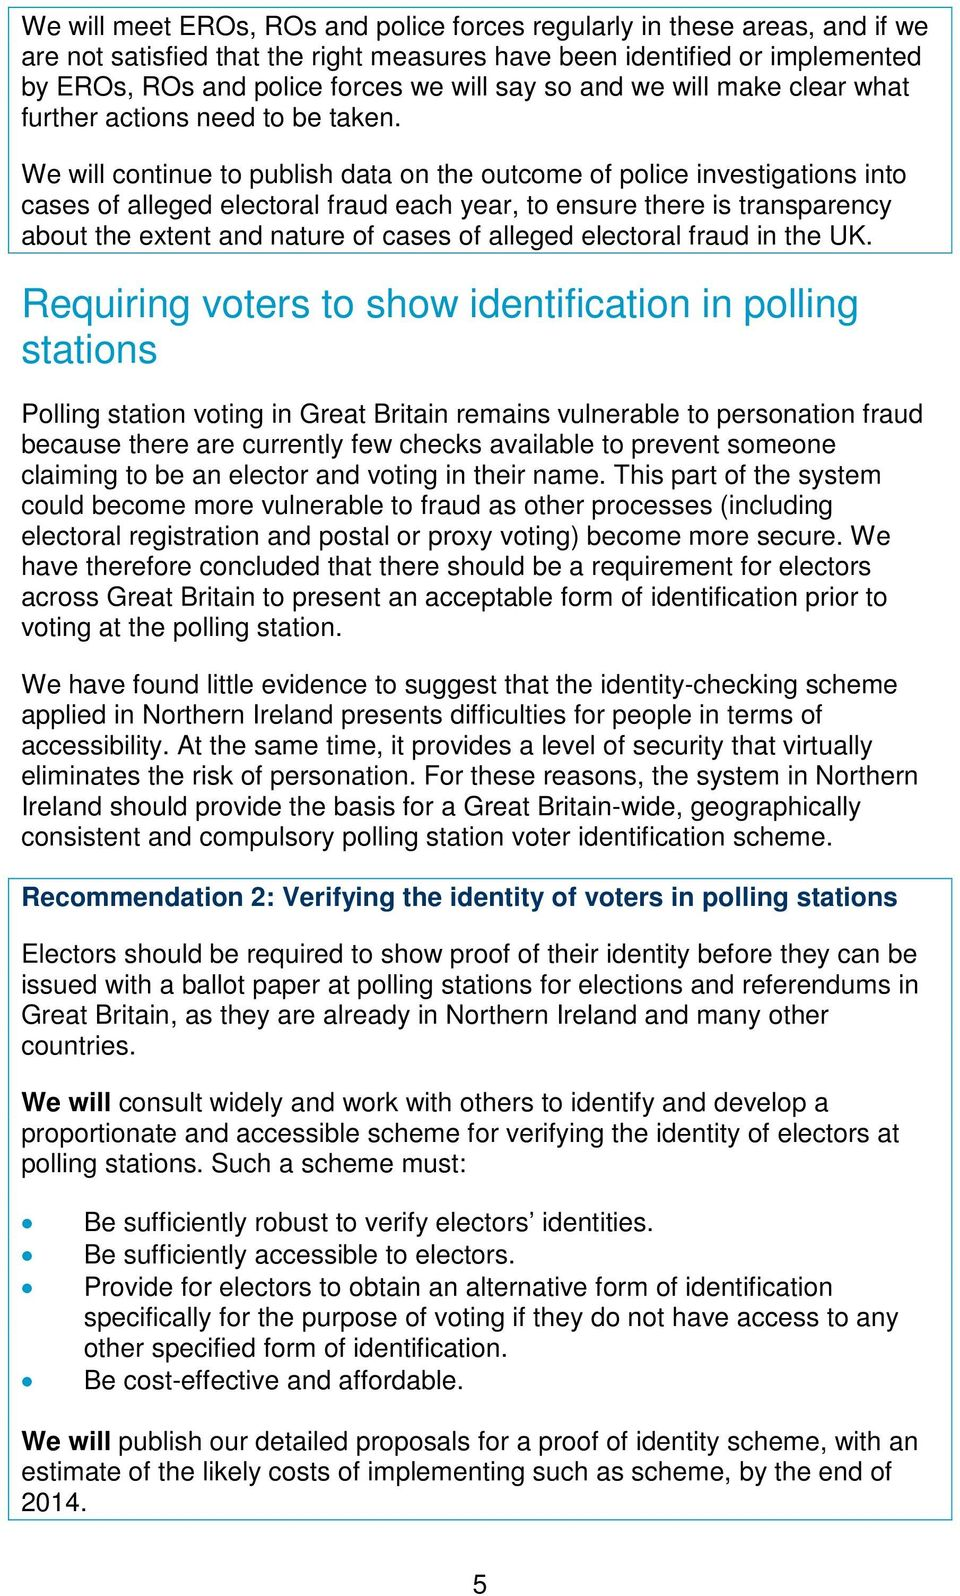 We will continue to publish data on the outcome of police investigations into cases of alleged electoral fraud each year, to ensure there is transparency about the extent and nature of cases of